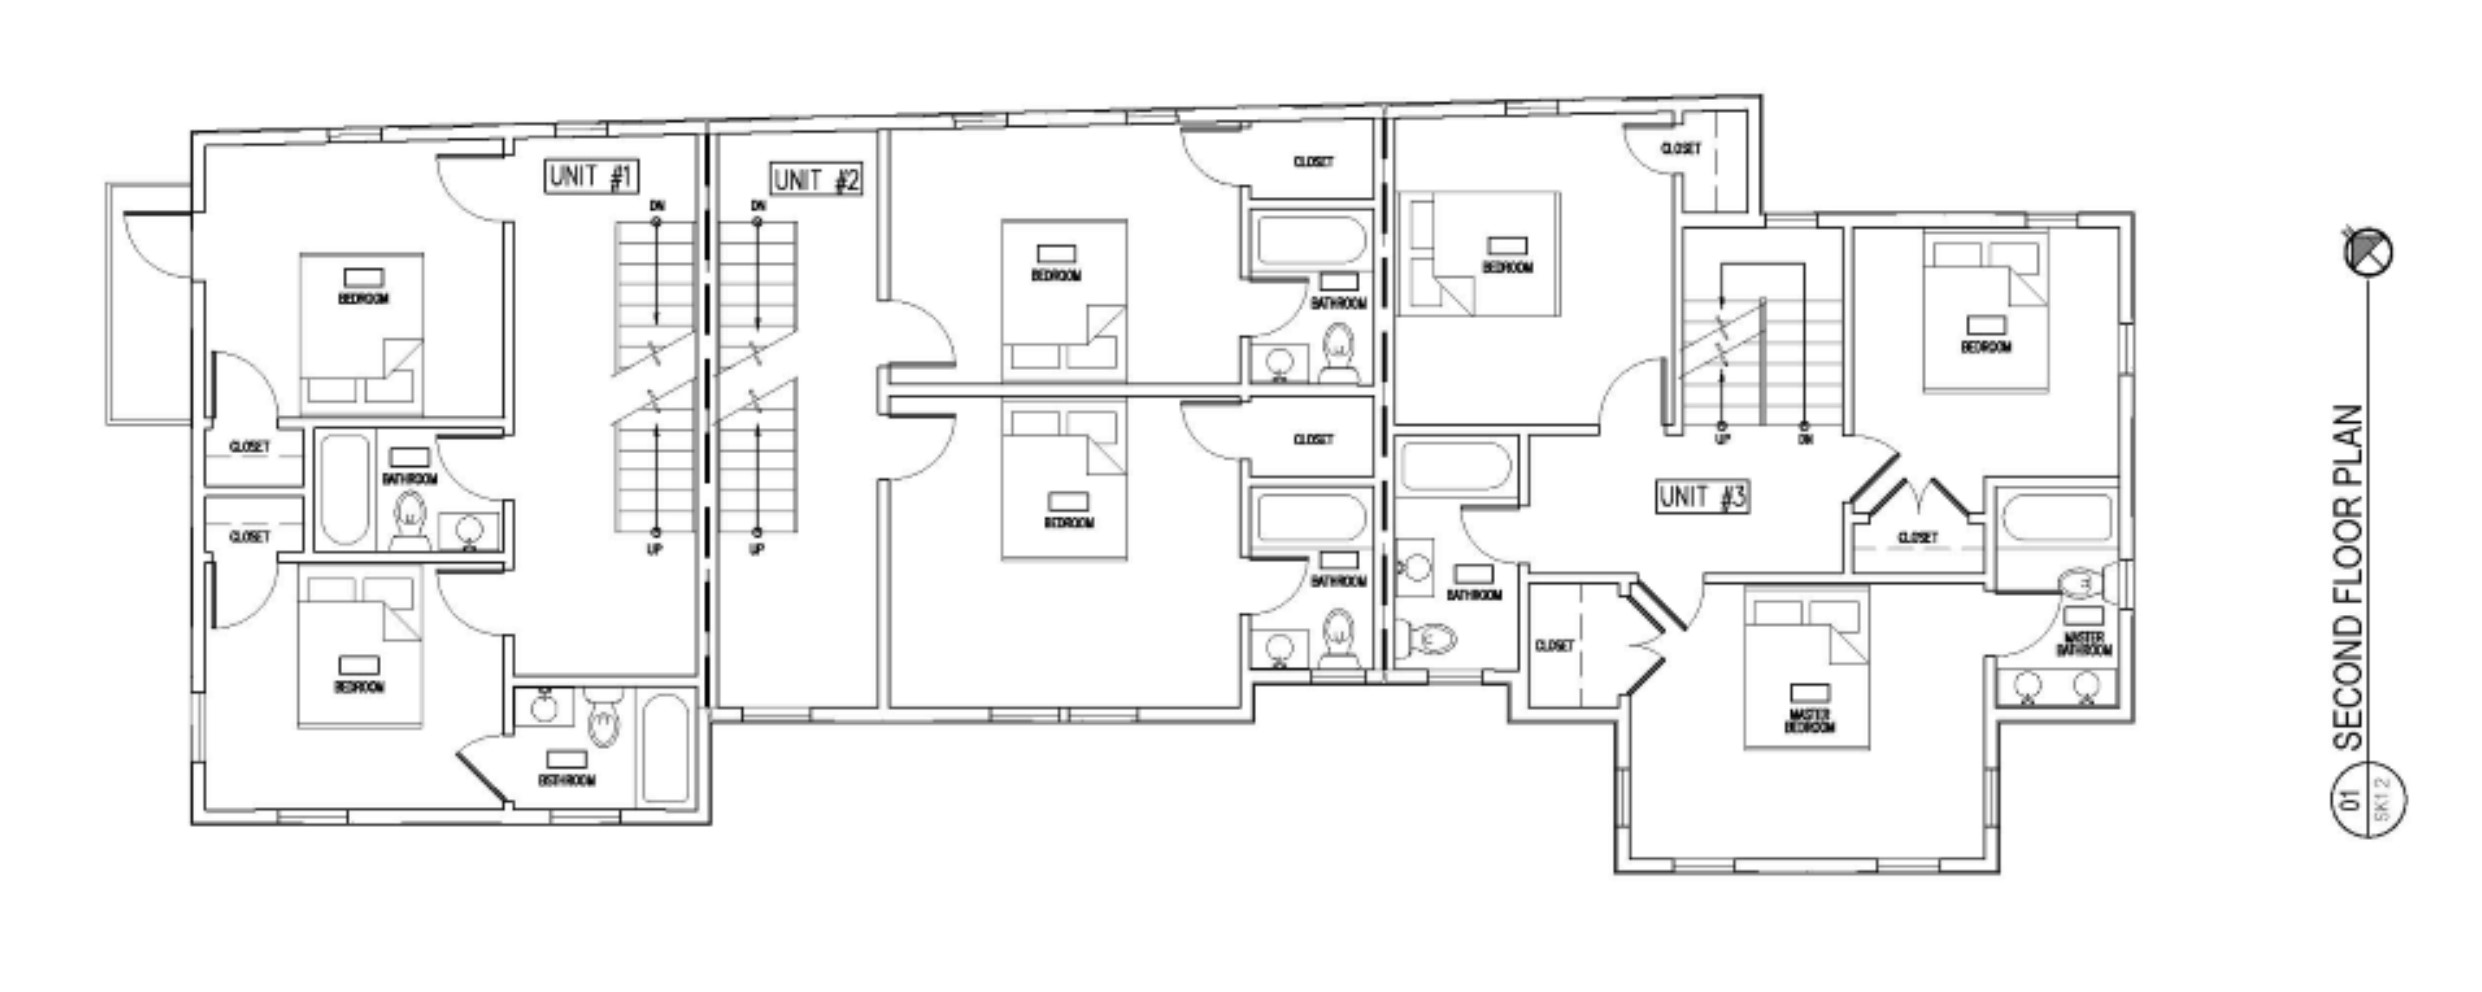 SECOND LEVEL FLOOR PLAN OF TOWNHOUSE AT 75 RUSH ST IN SOMERVILLE